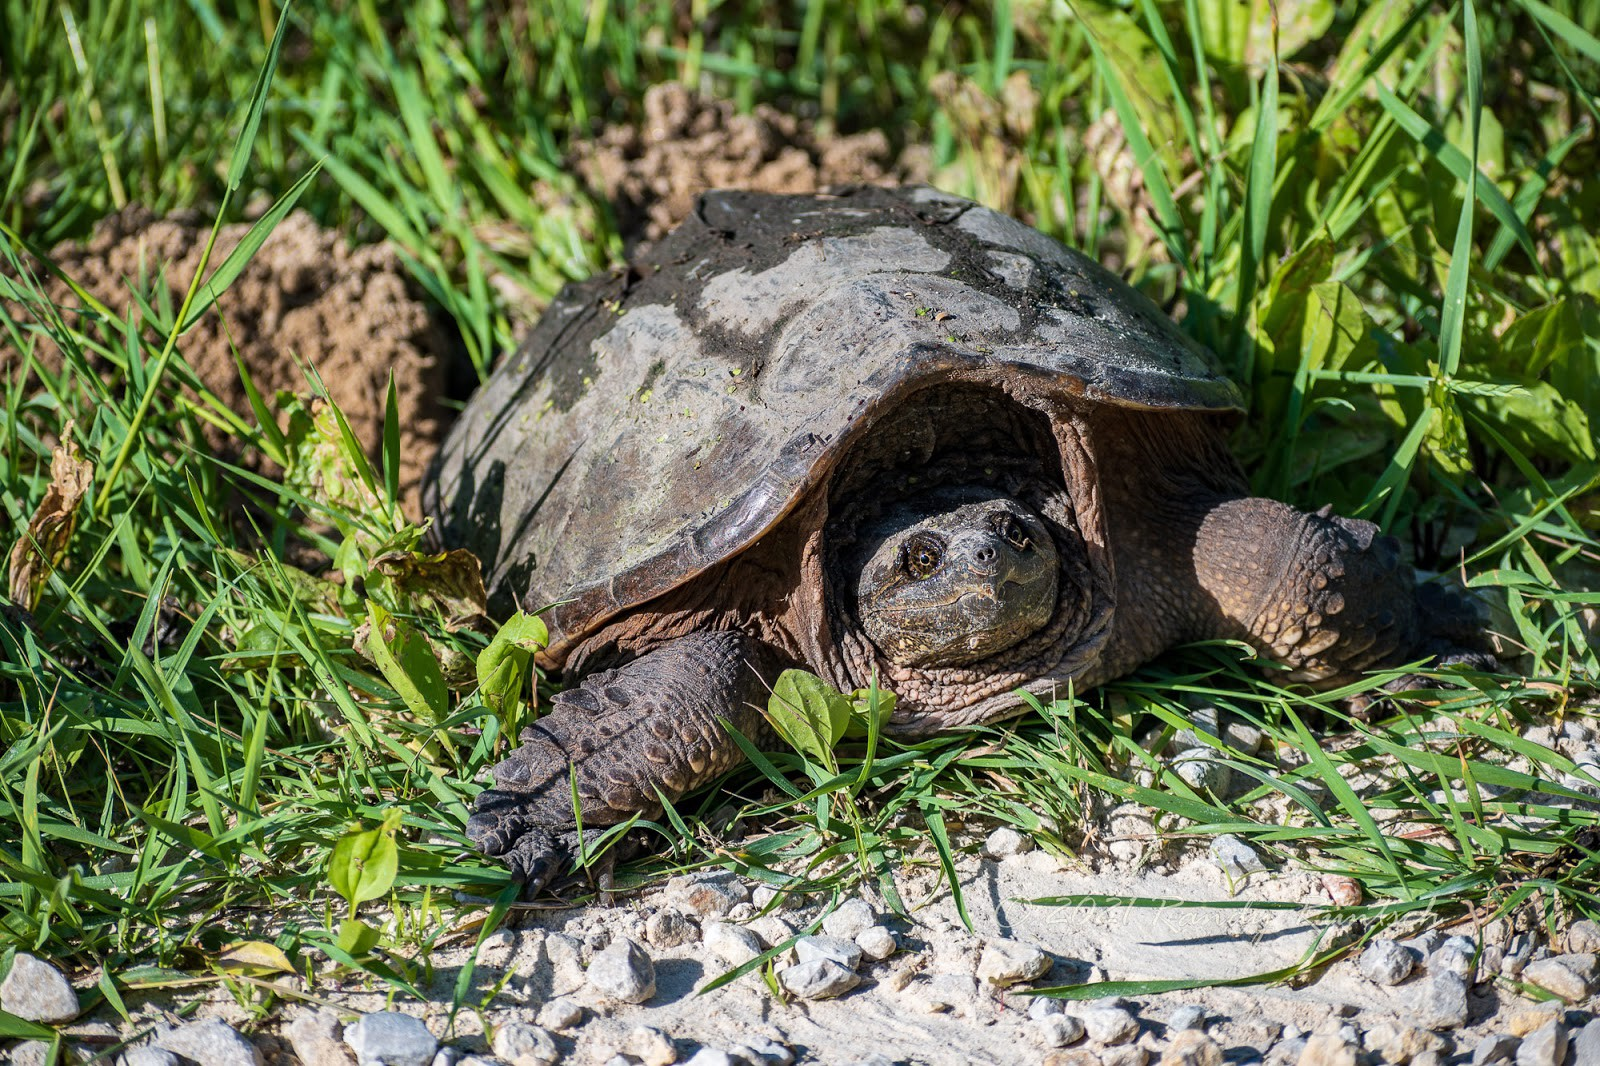 A female common snapping turtle laying eggs. Photo by the author.